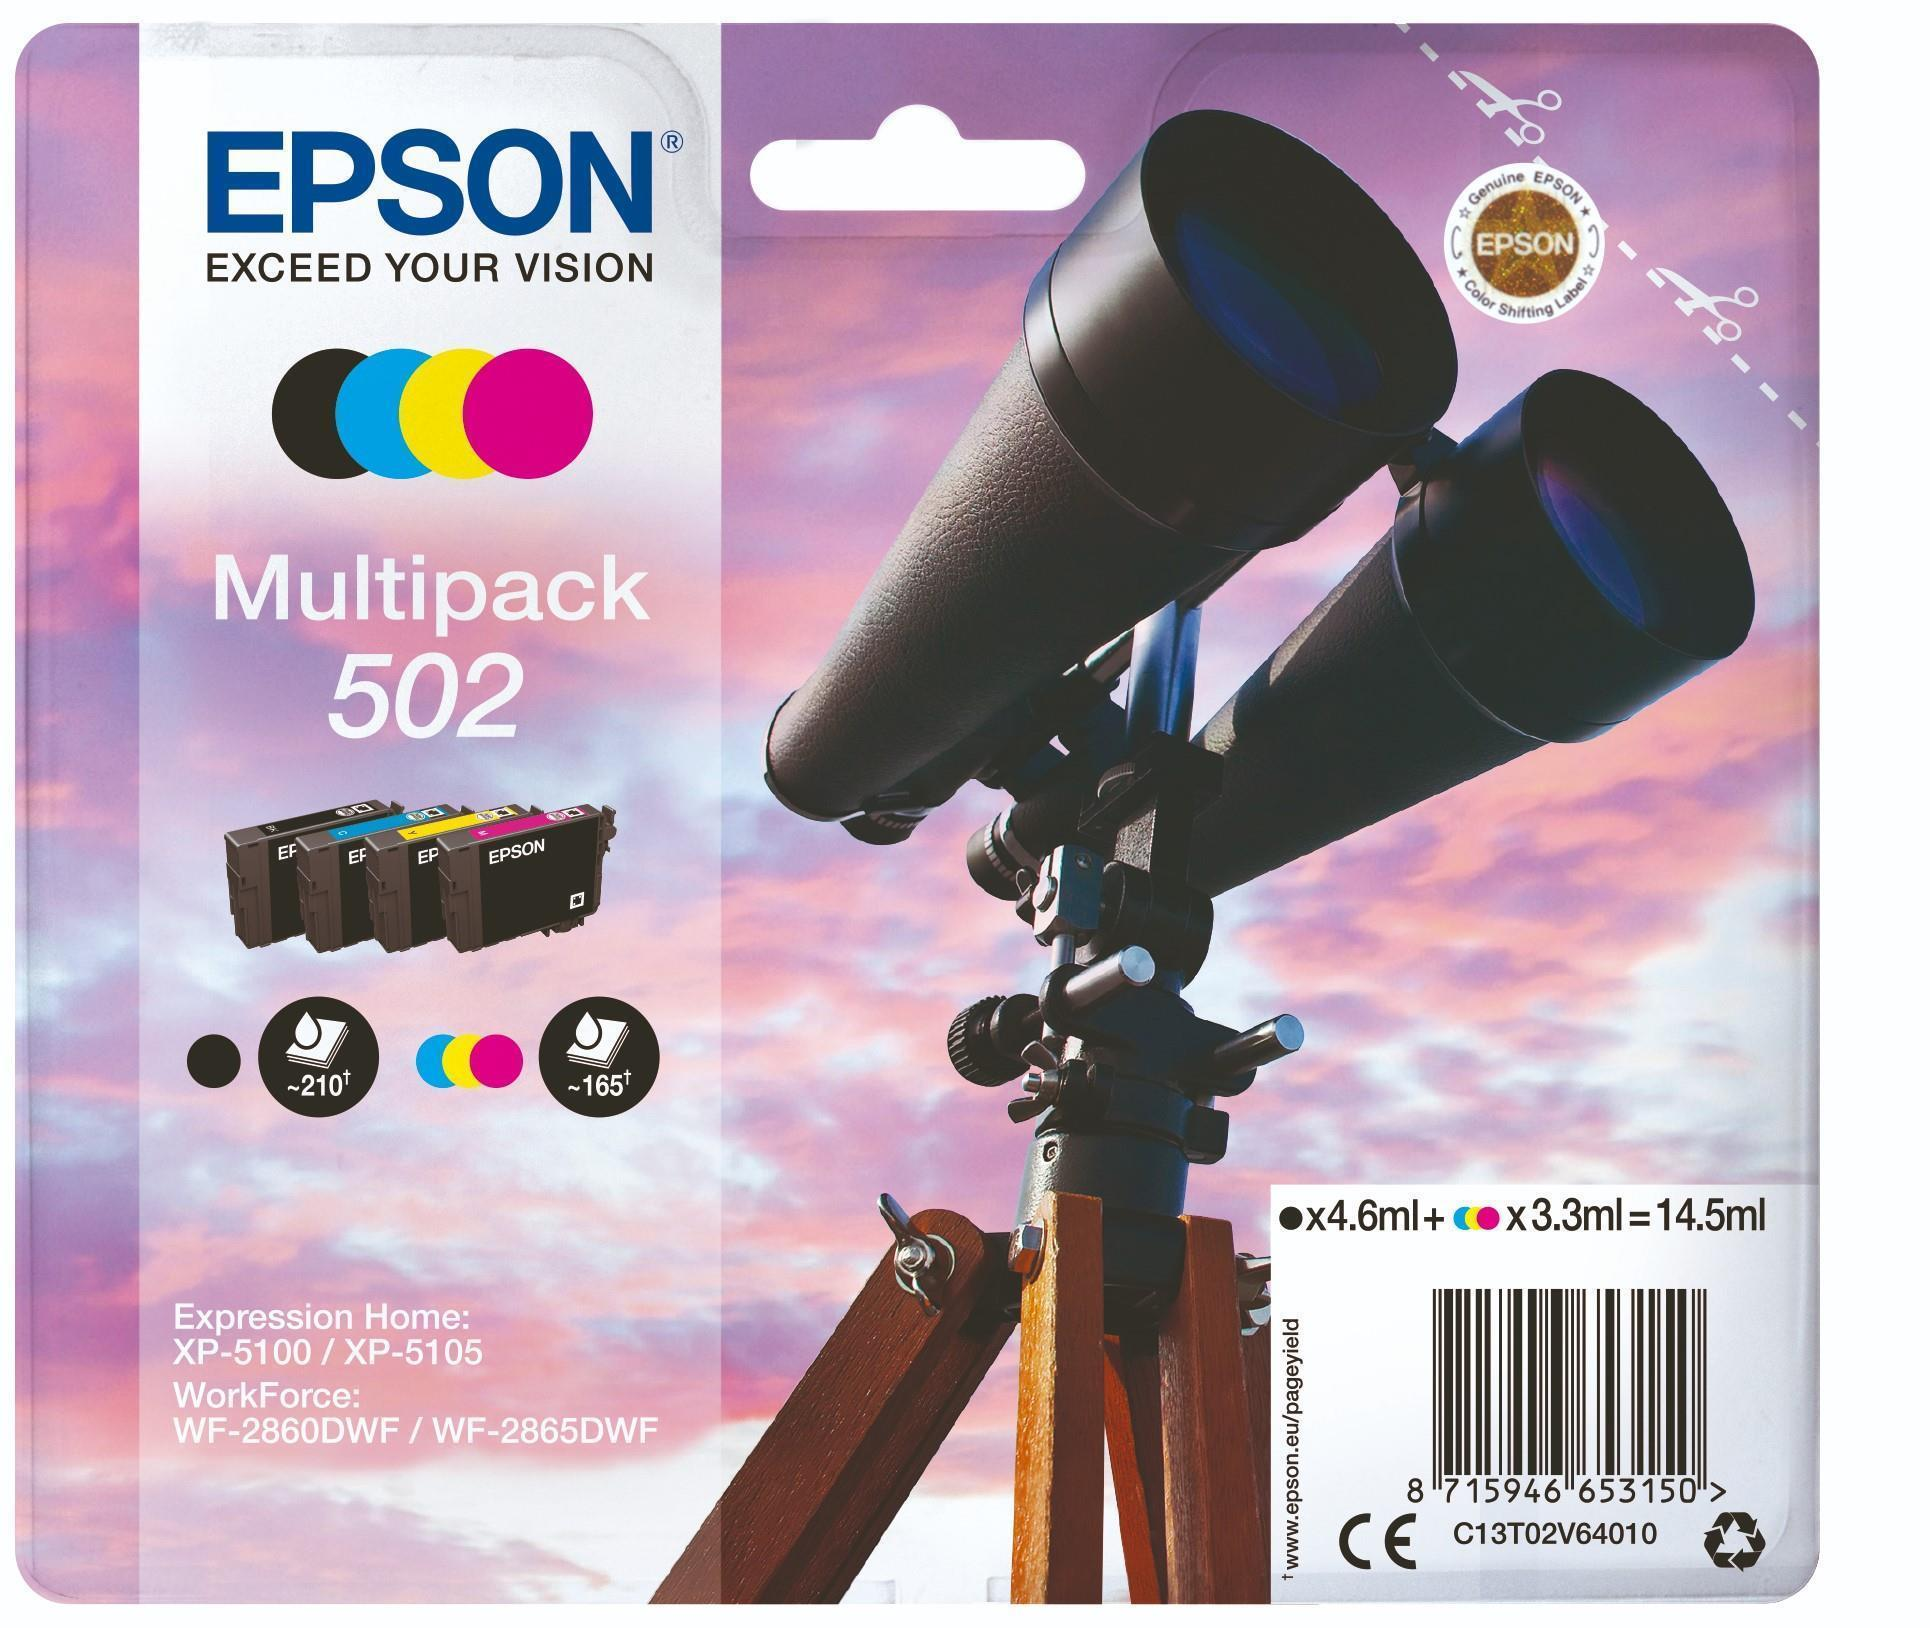 Epson C13T02V64010 502 Black/Cyan/Magenta/Yellow Multipack Binoculars Ink Consumables